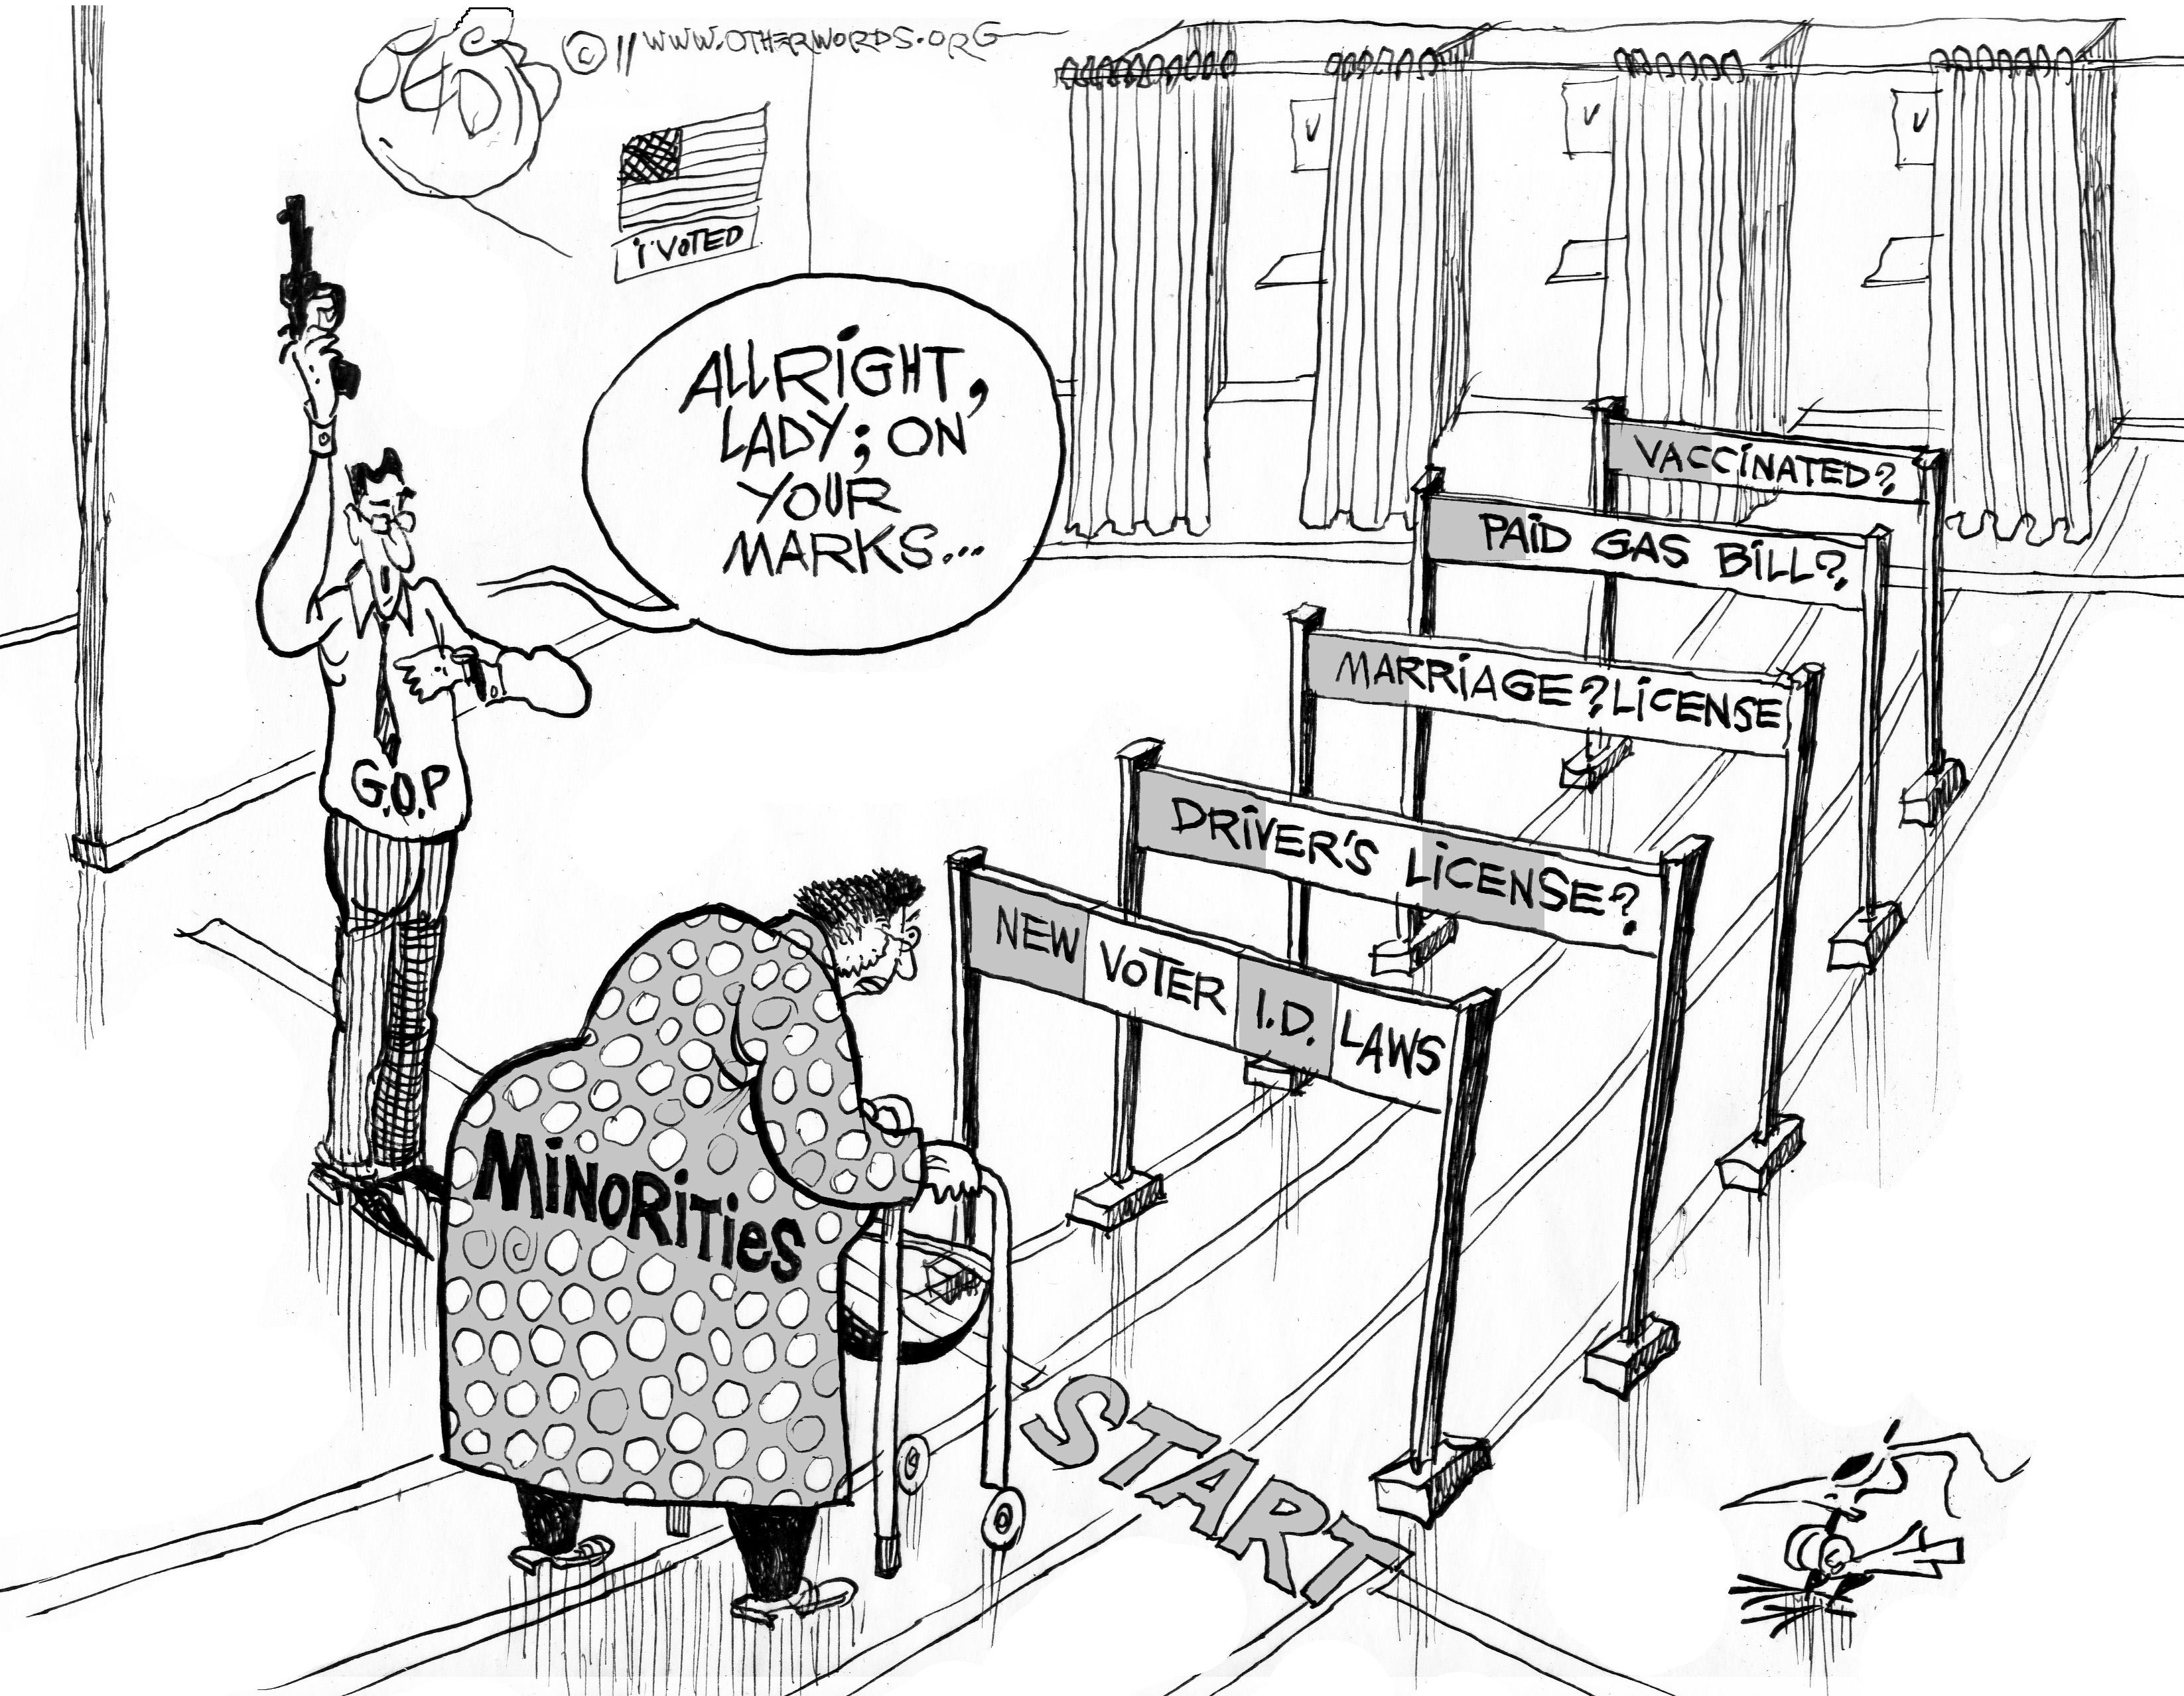 Voting Rights Obstacles